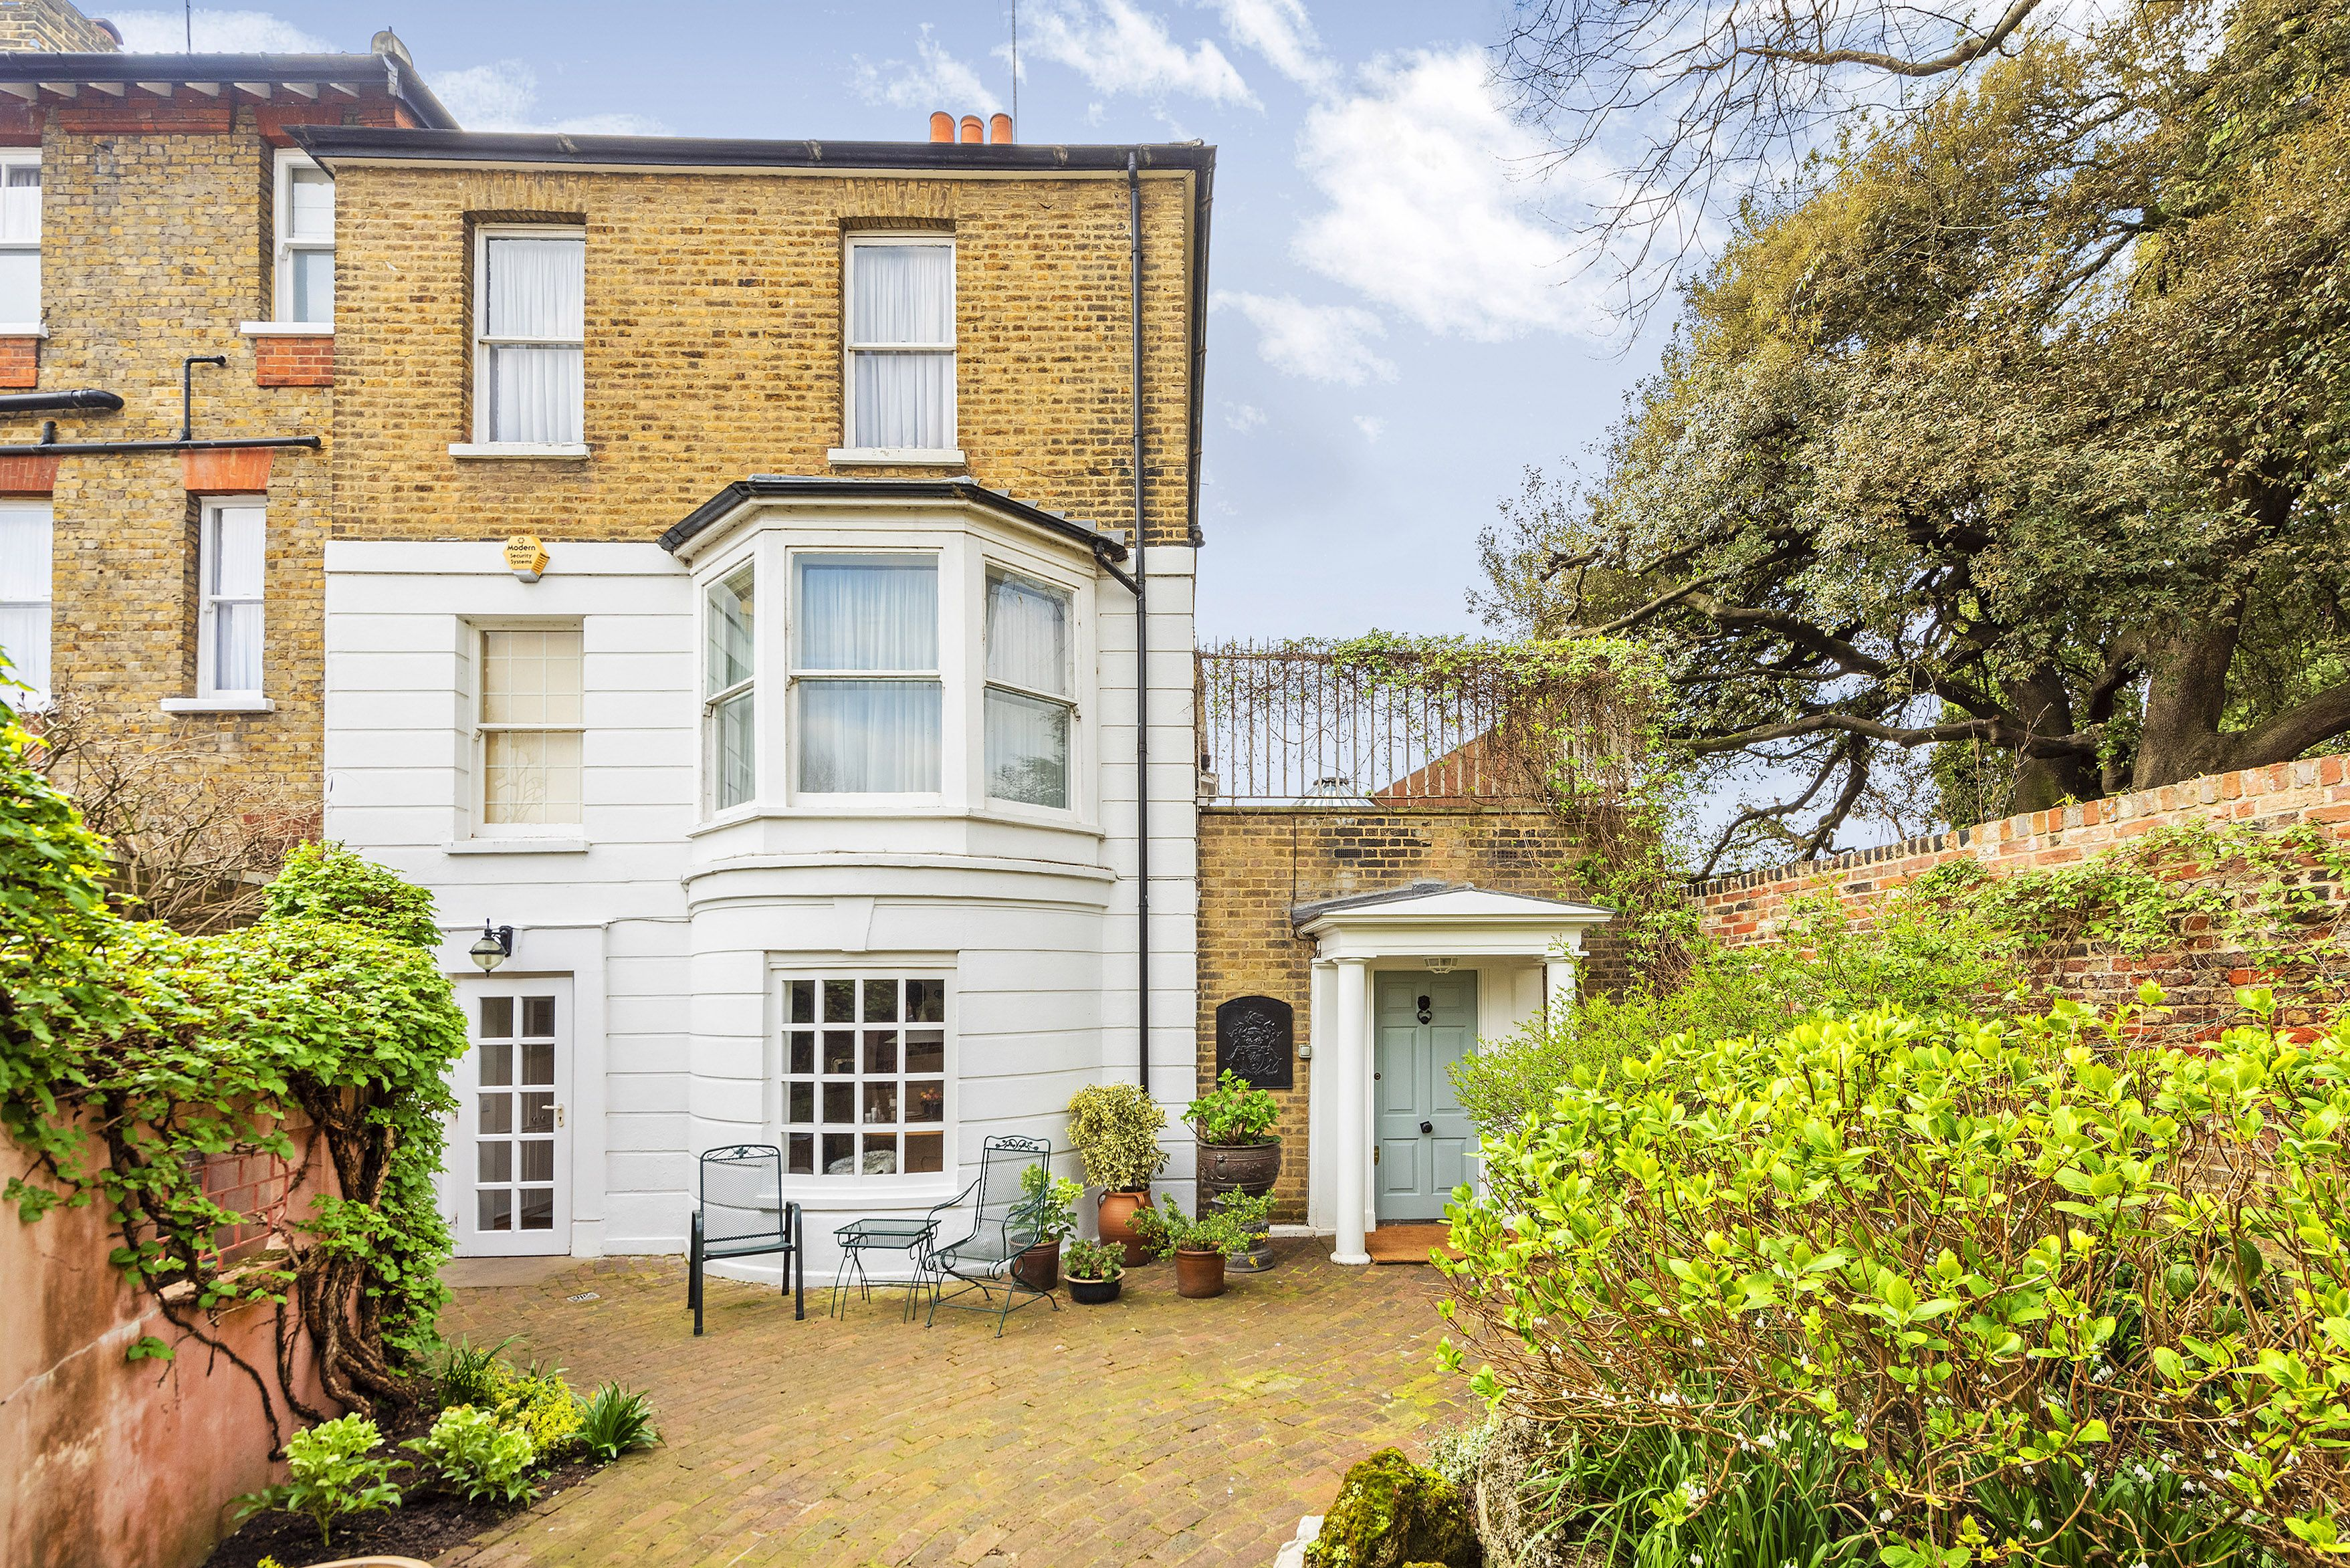 Delightful Georgian house along scenic stretch of the River Thames for sale in Richmond